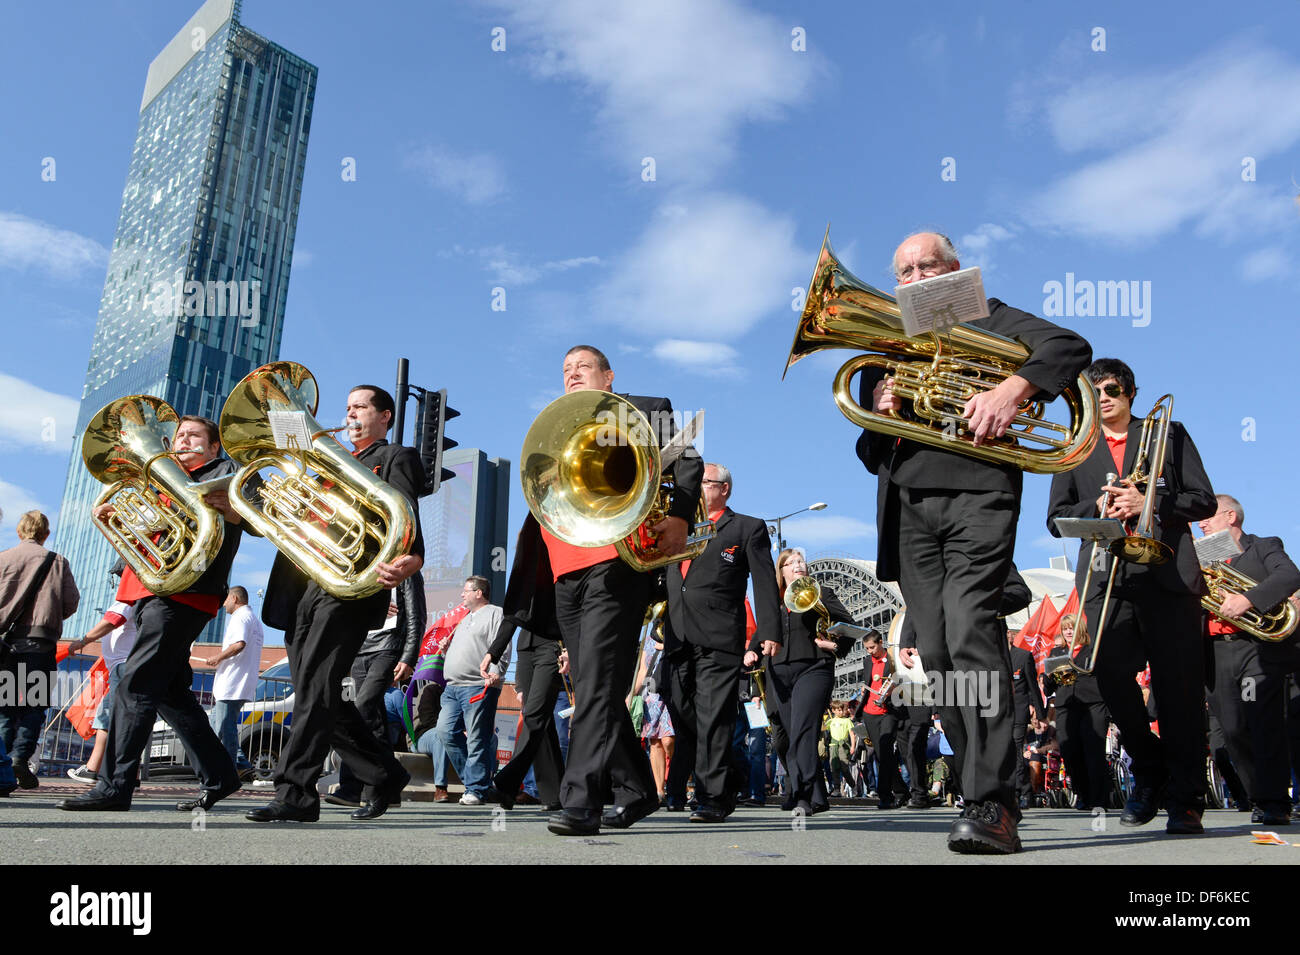 Manchester, UK. 29th Sept 2013. A brass band play during a North West TUC organised march and rally intending to - Stock Image